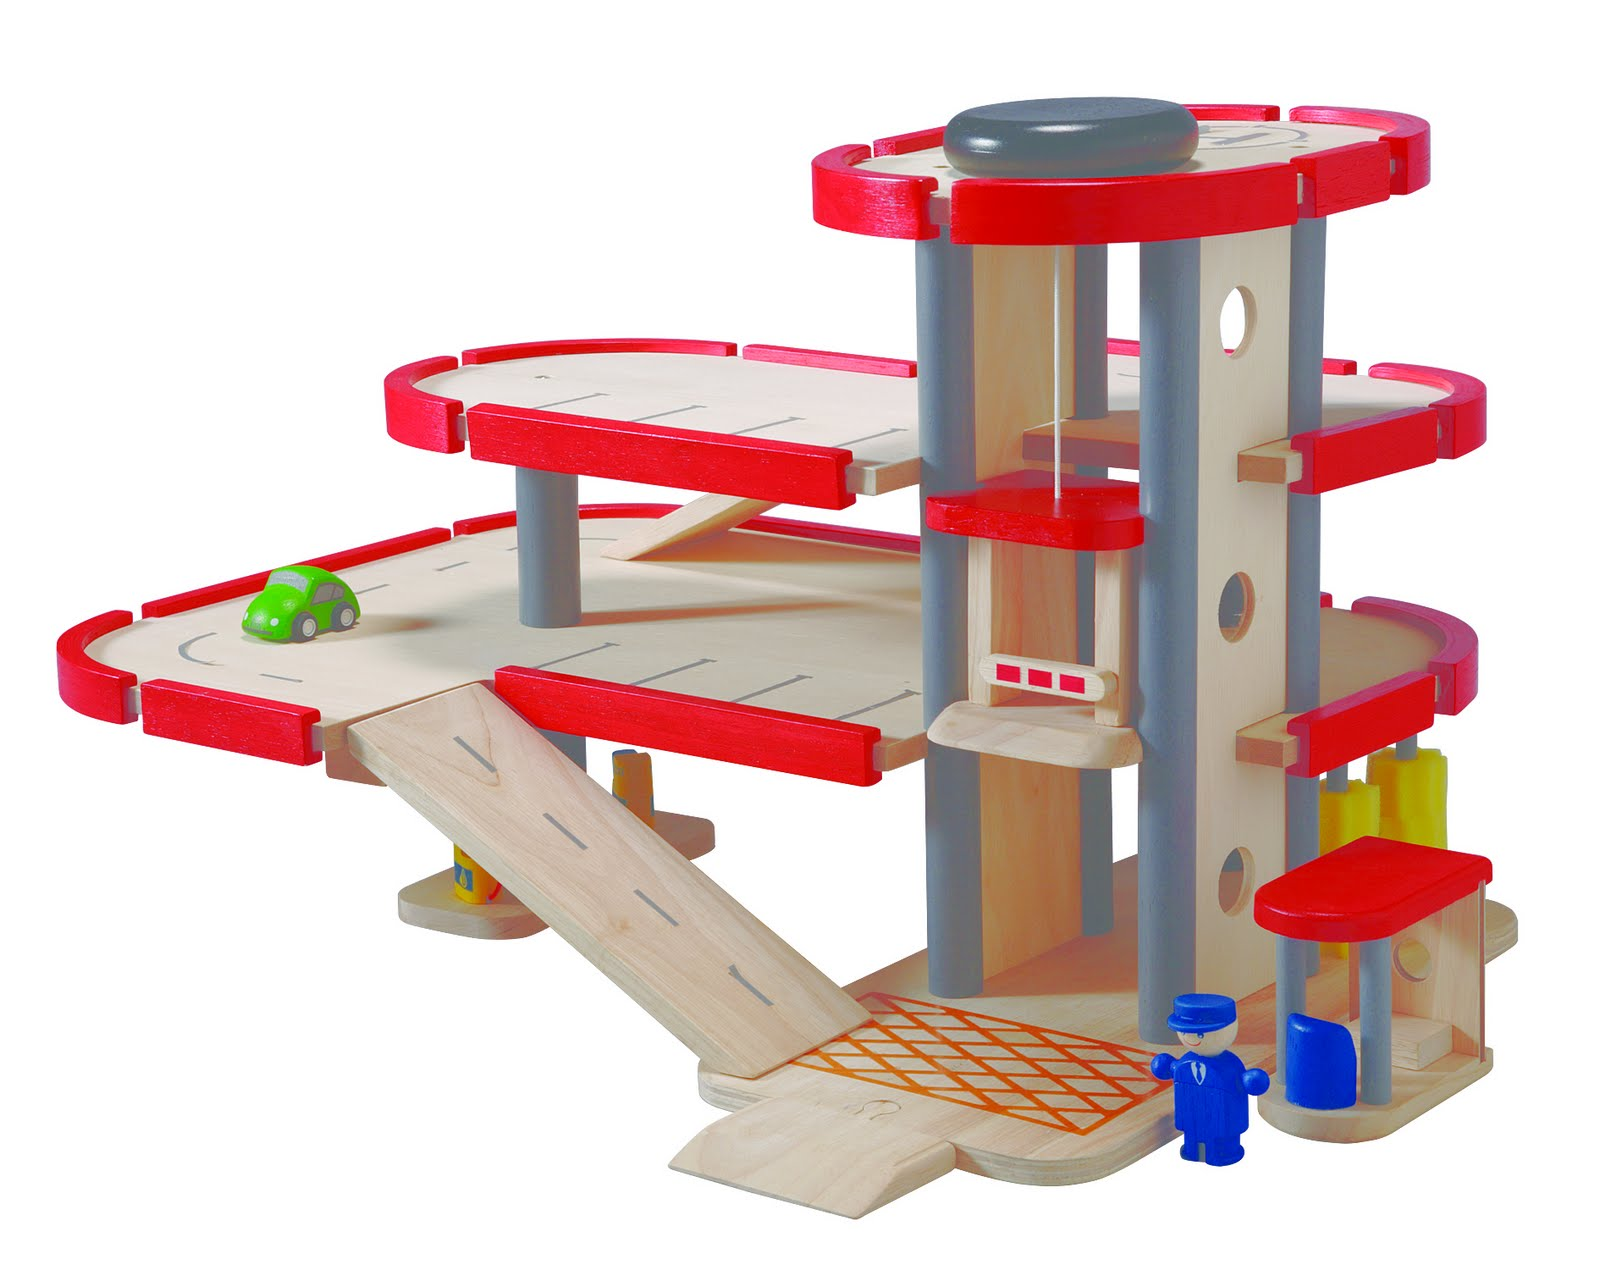 Plan Toys Garage Reviews, Jul... - Amazing Wood Plans